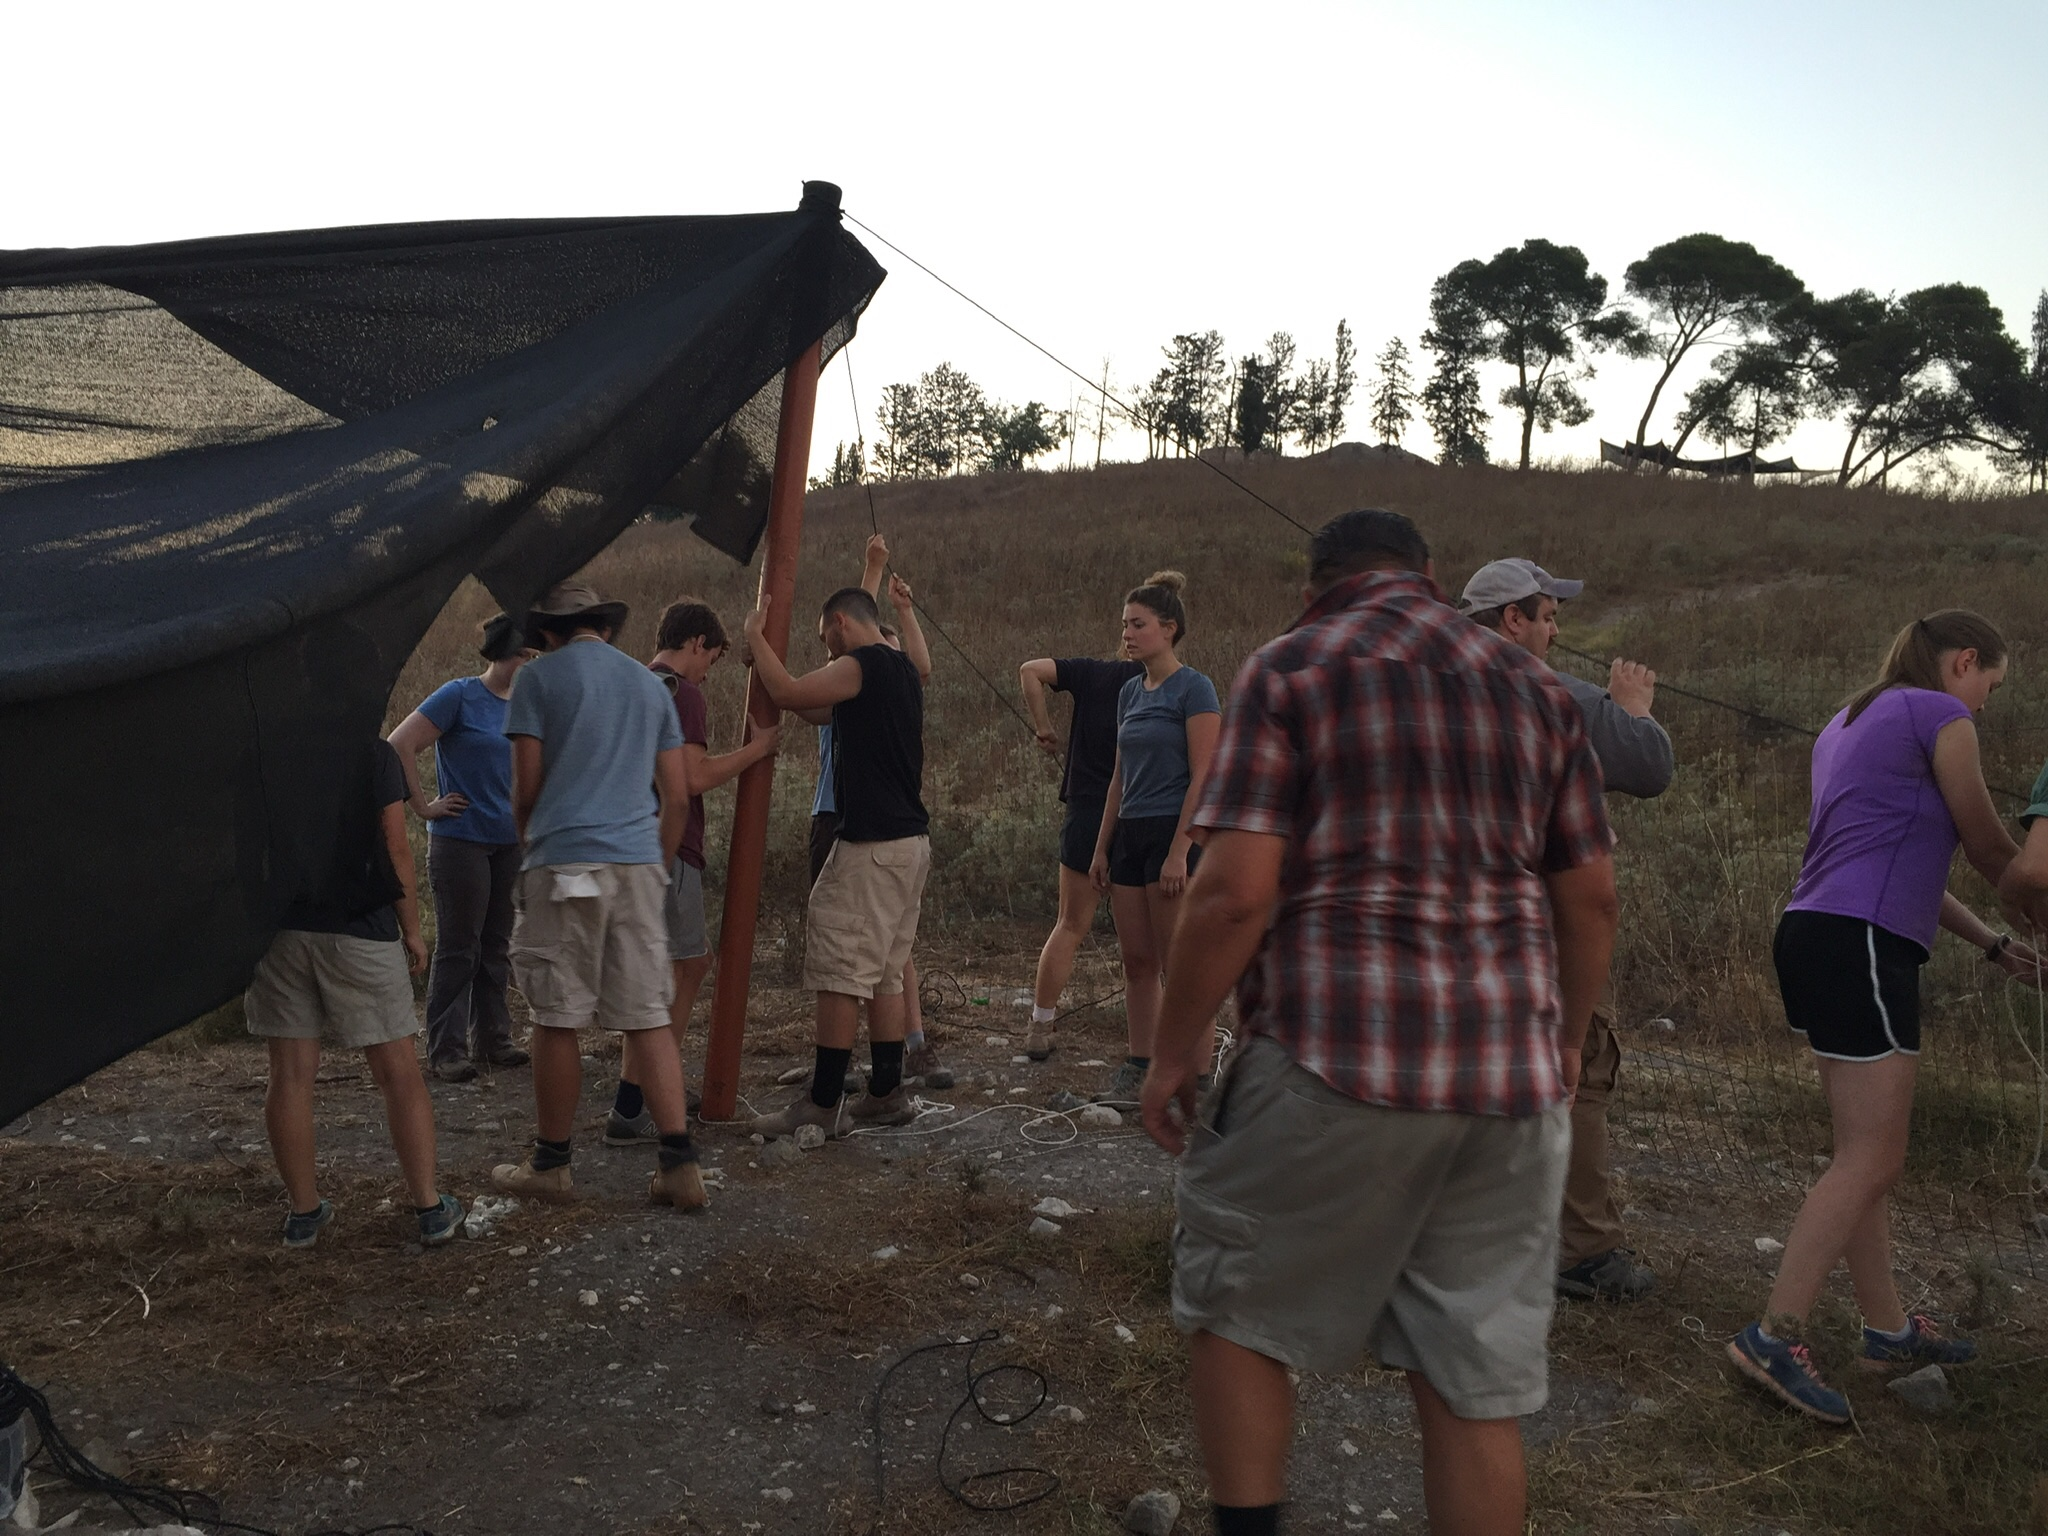 Hanging a 30 x 15 meter shade cloth requires a lot of people